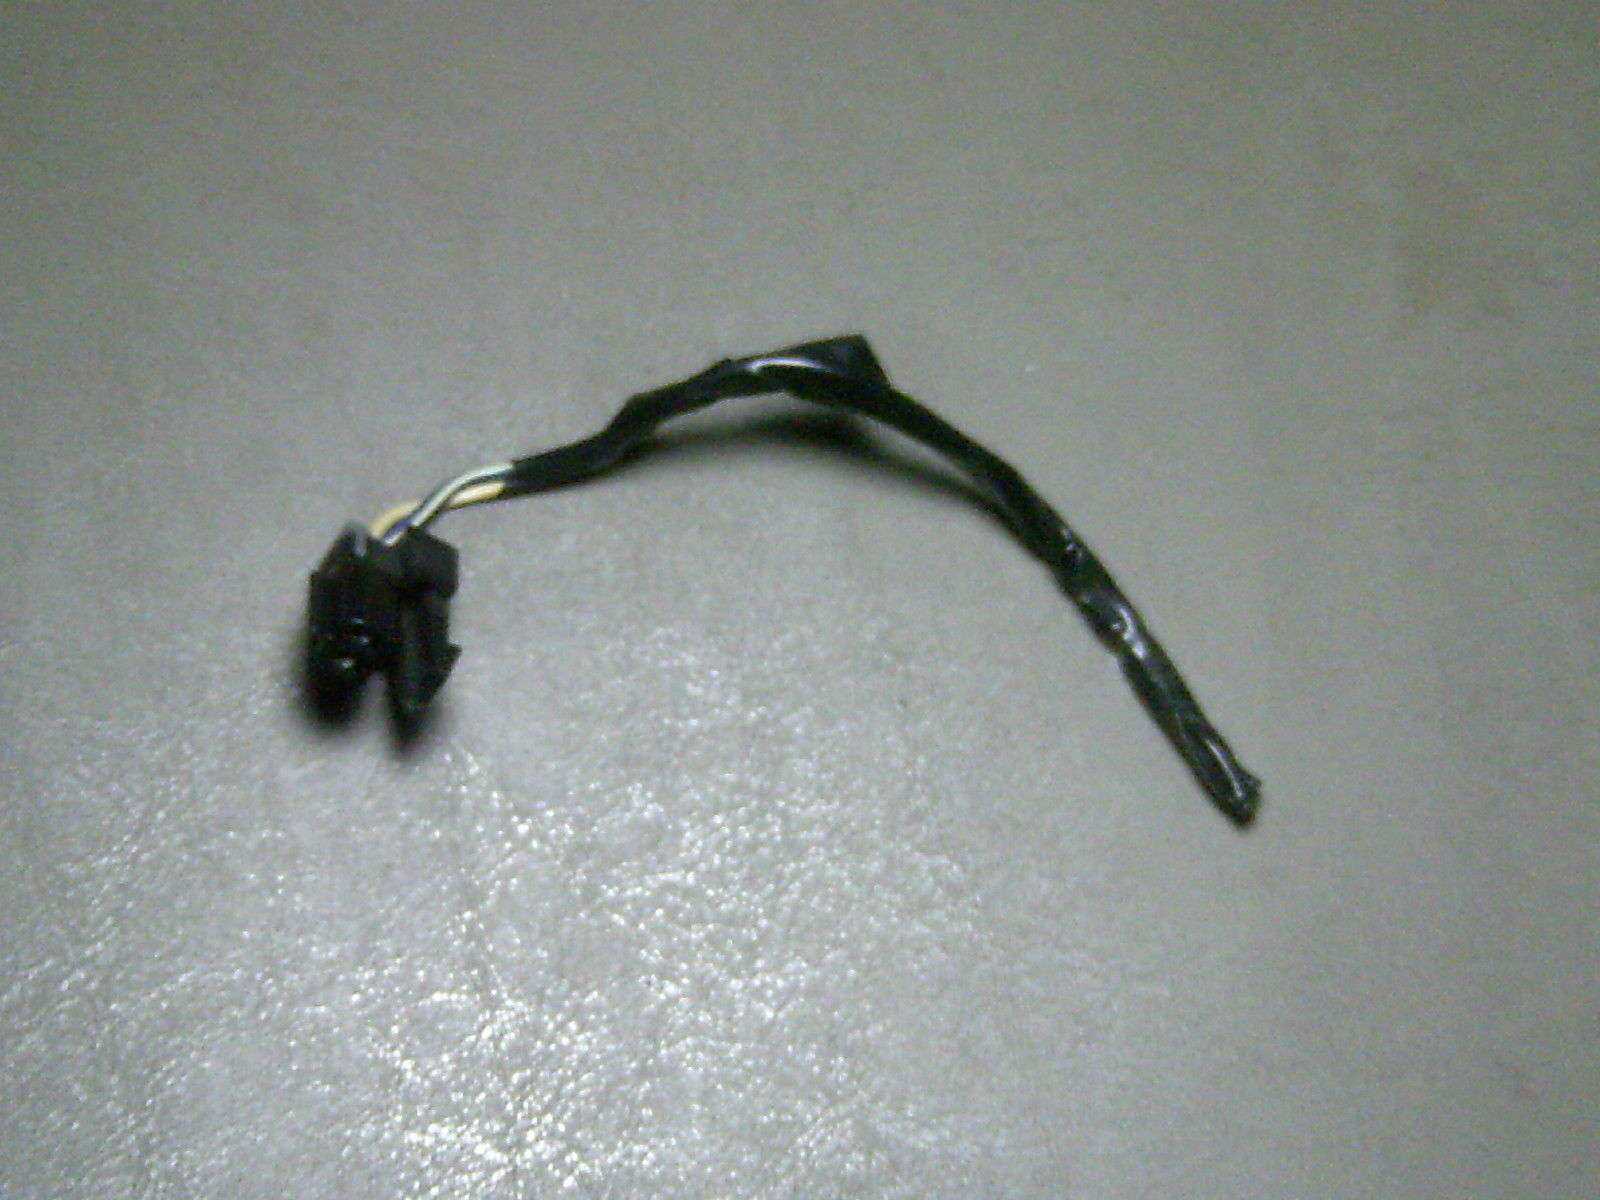 Primary image for 98 Chevy Camaro Dome Light Part Number 10230834 Pigtail - Wires - Connector